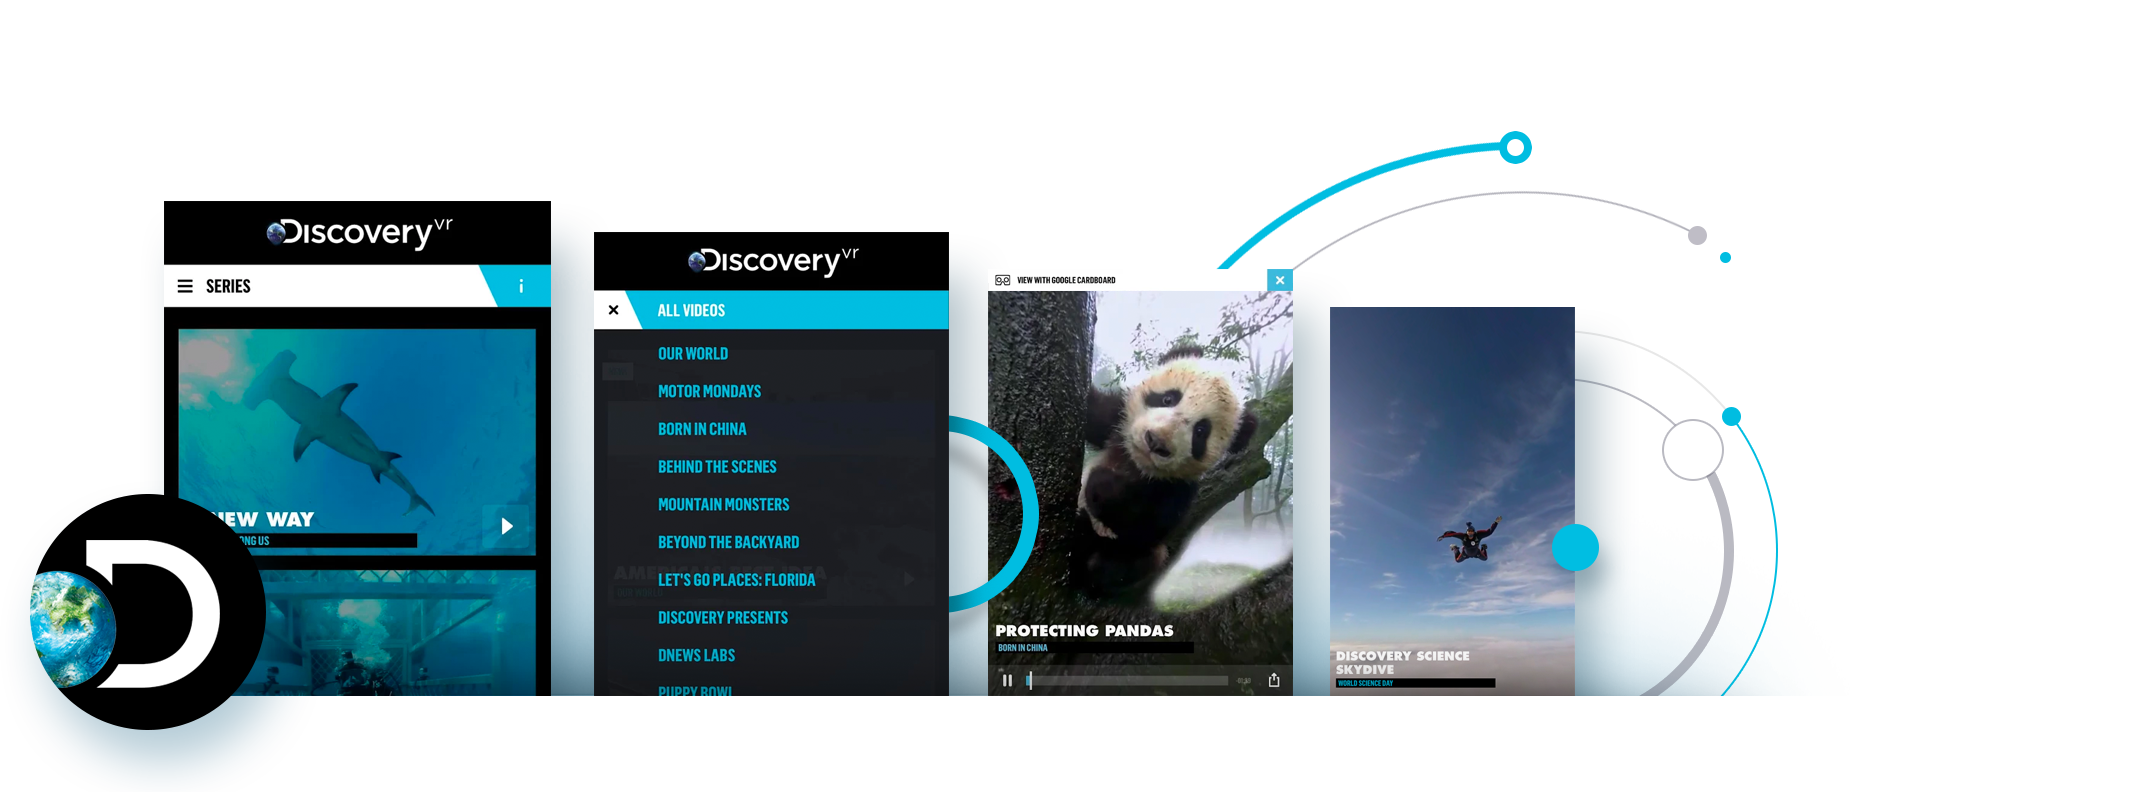 Discovery VR React Native App